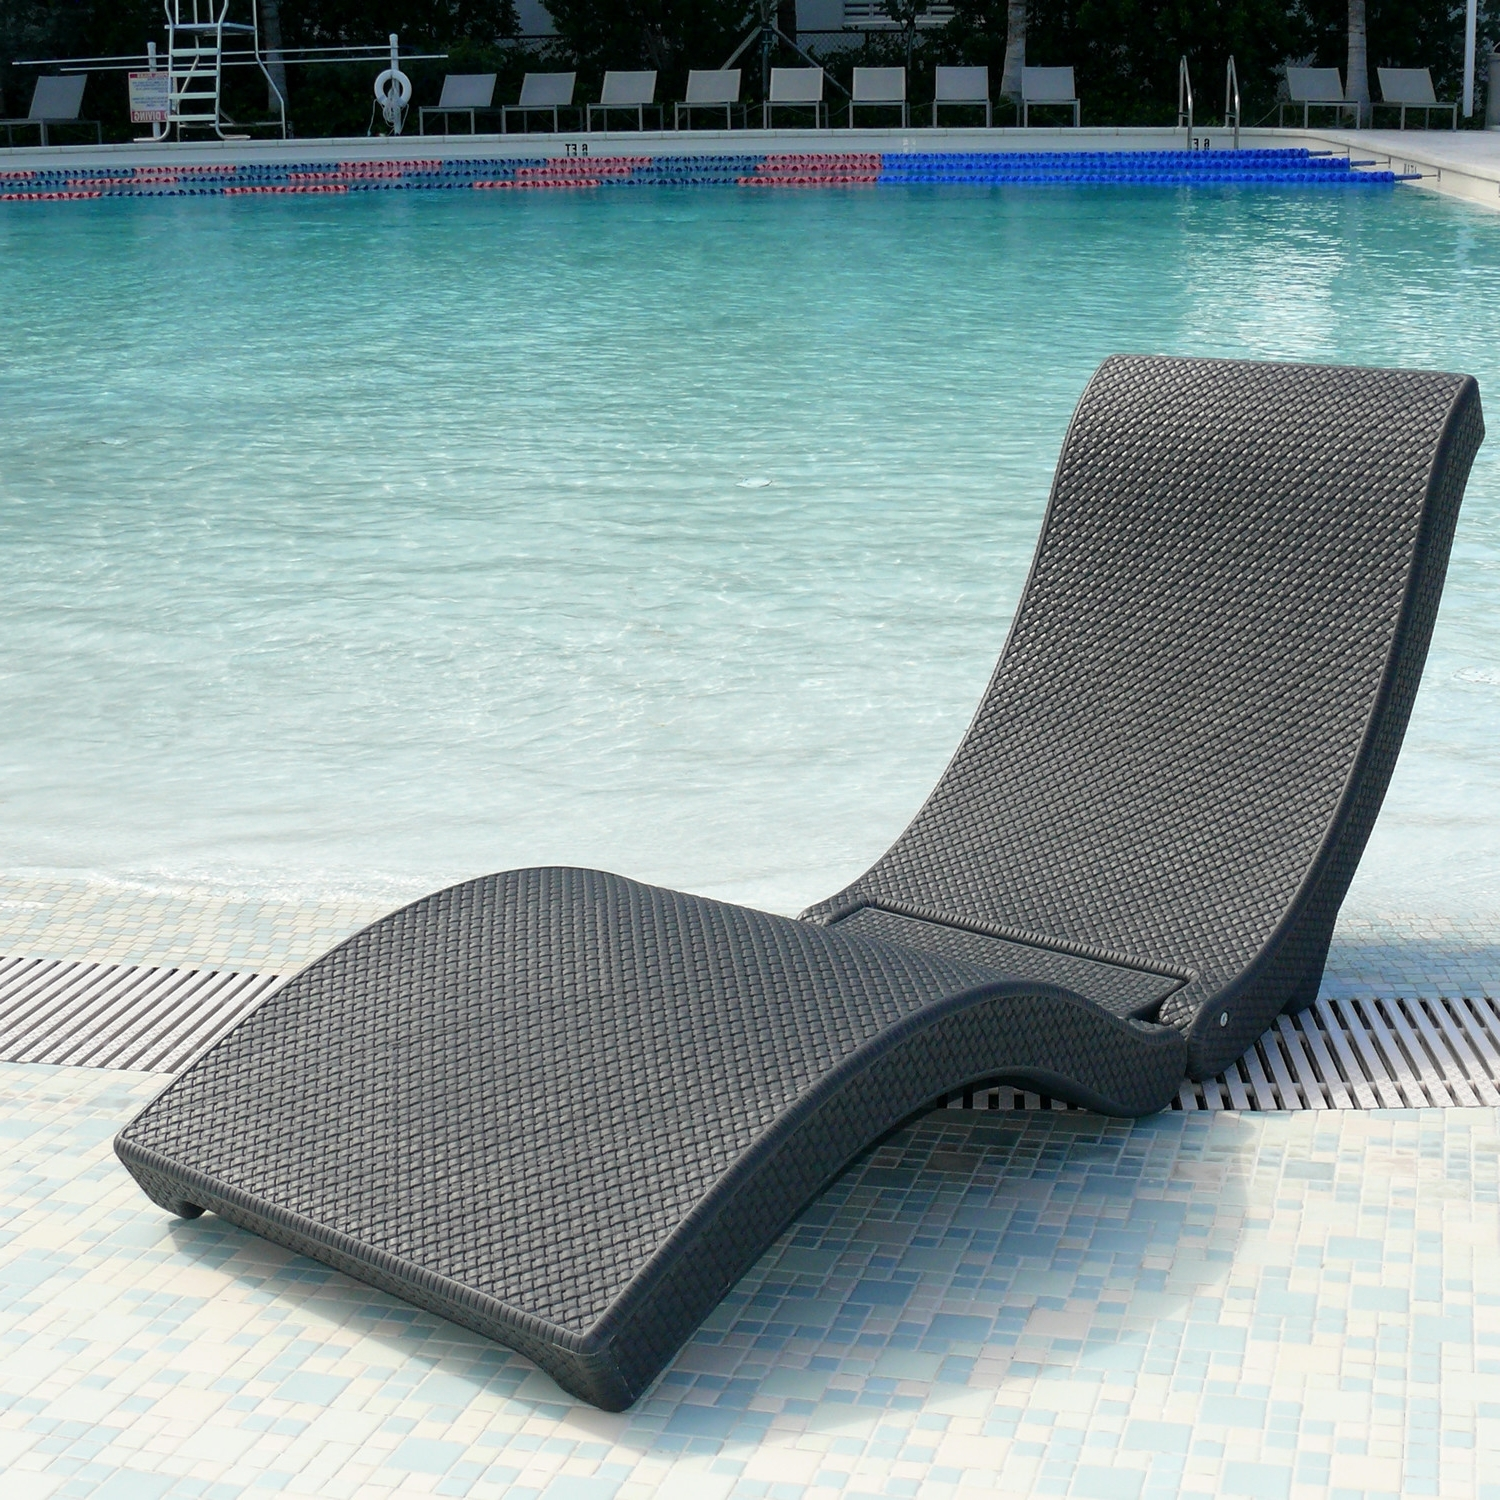 Most Recent Plastic Lounge Chairs Pool (View 6 of 15)